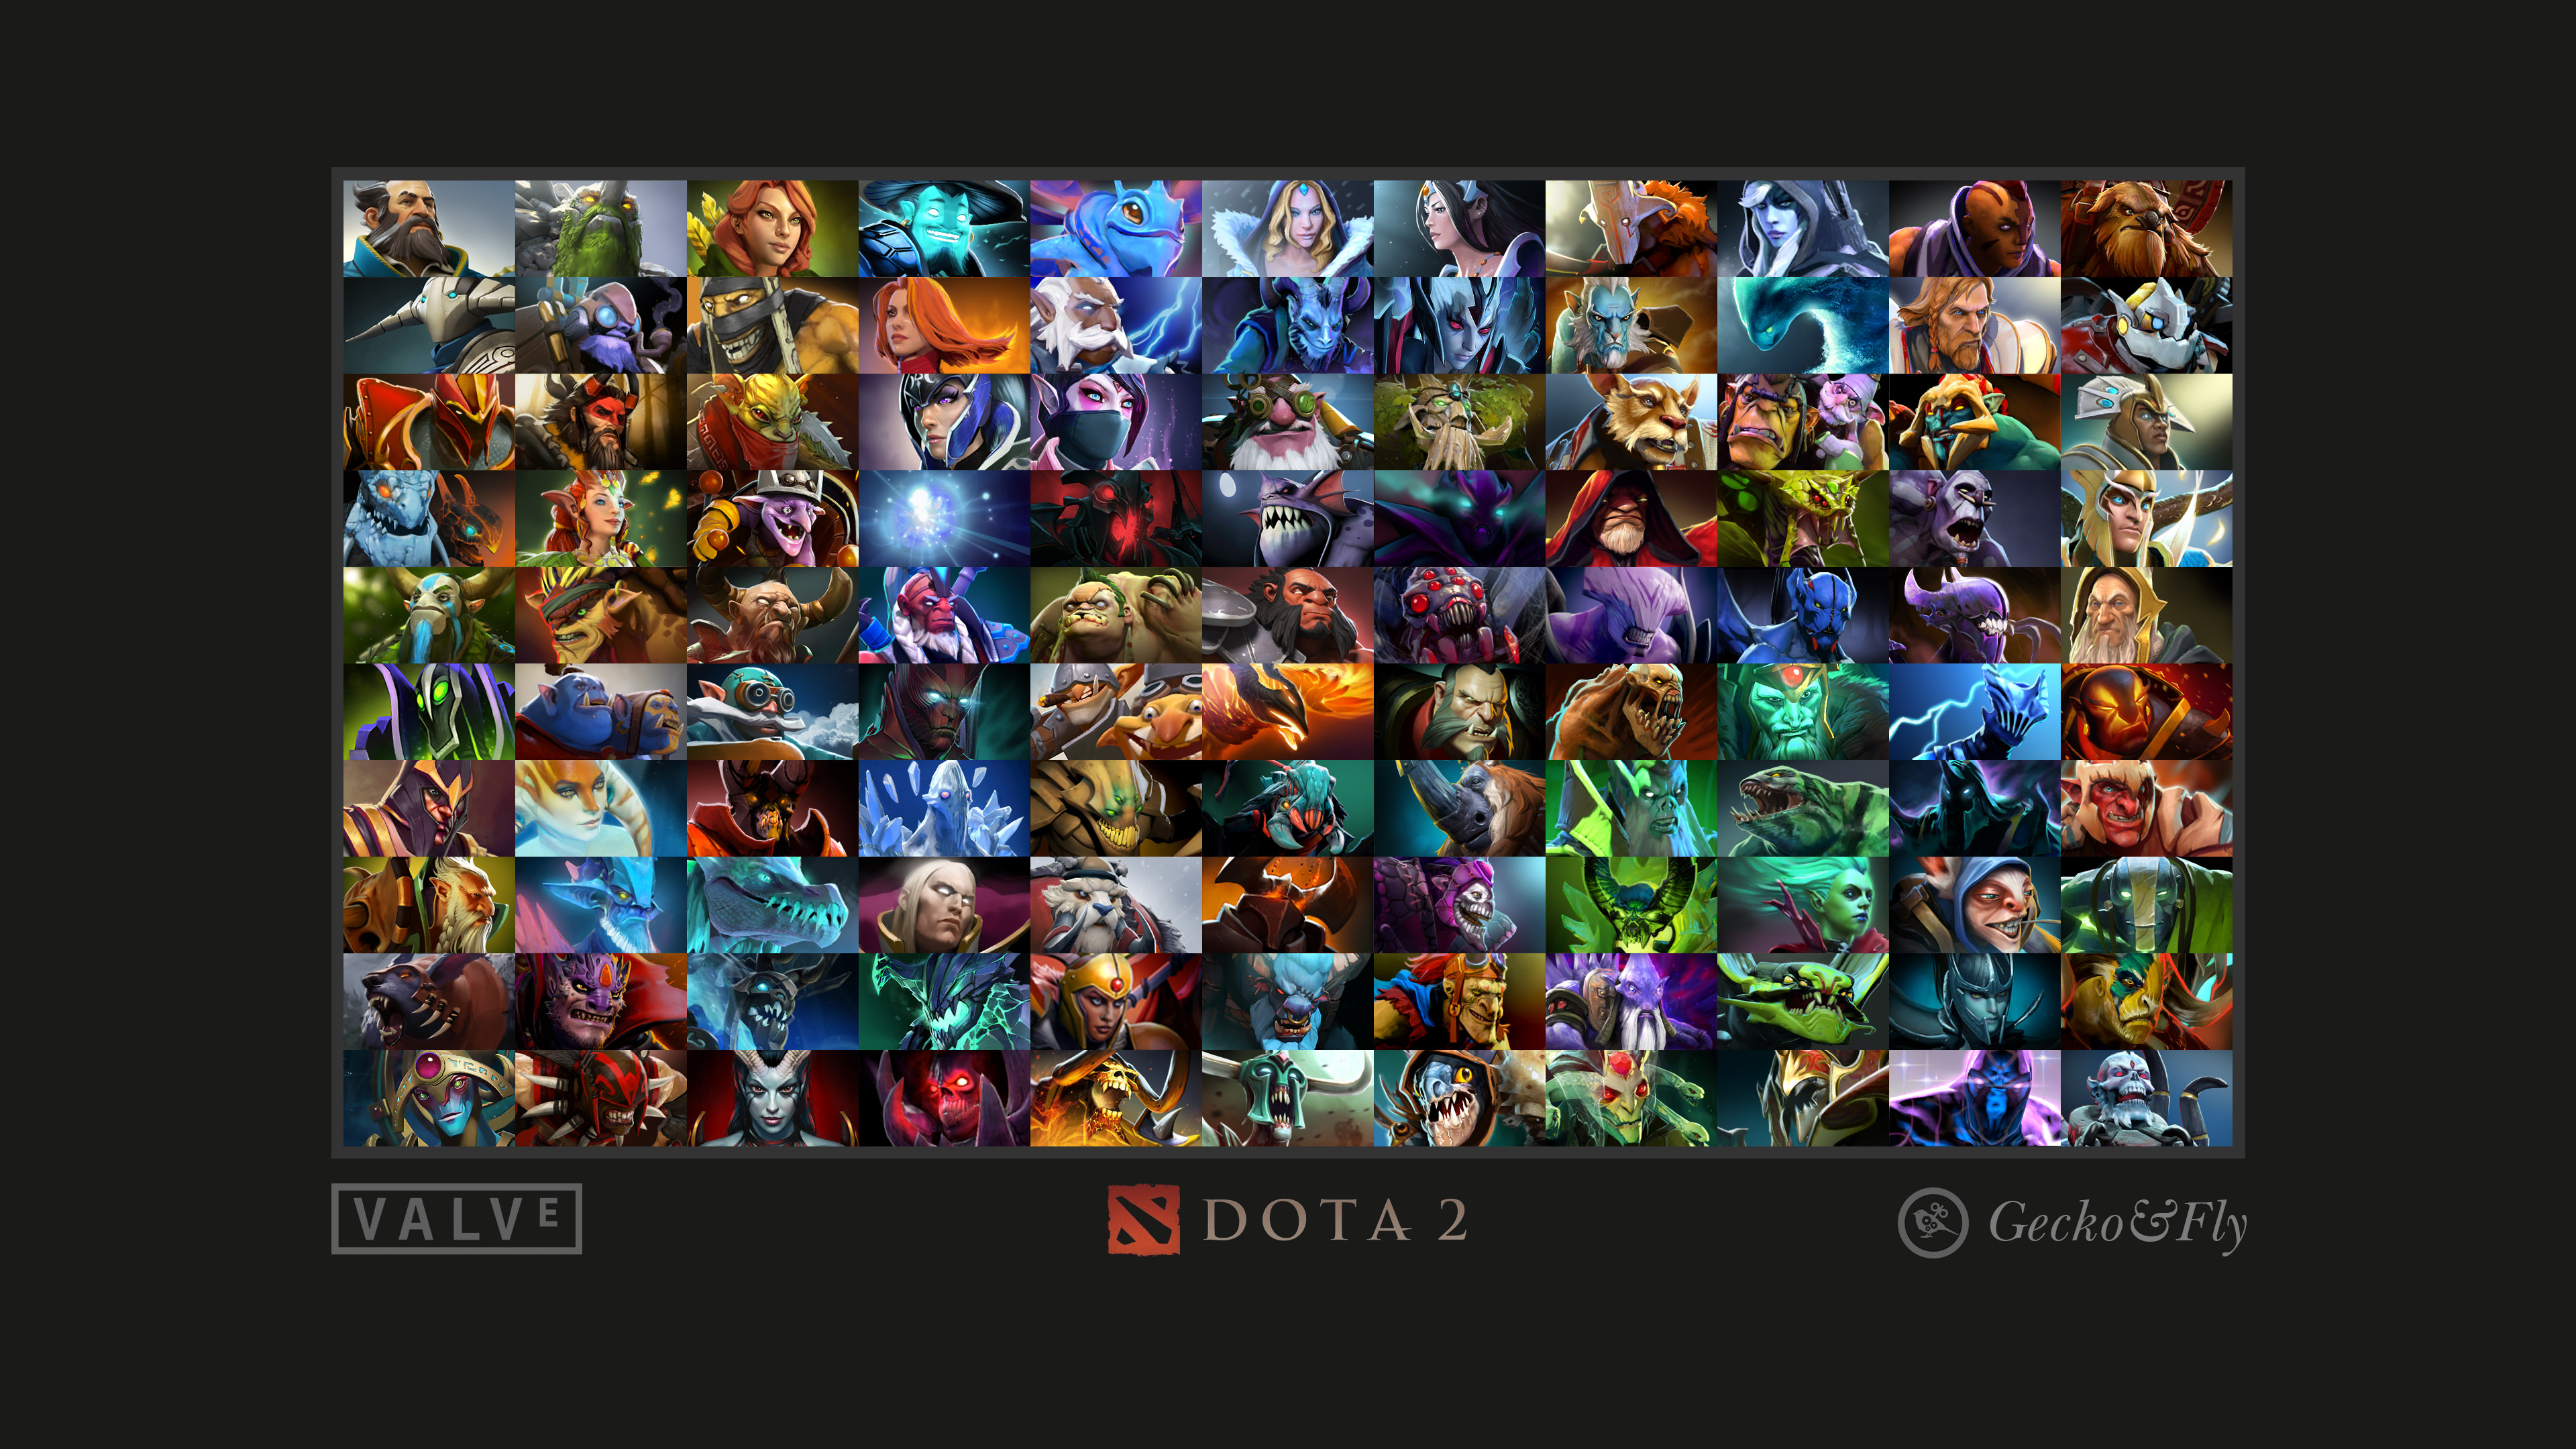 Windows 10 Wallpapers Hd Fall 50 Beautiful Dota 2 Posters Amp Heroes Silhouette Hd Wallpapers